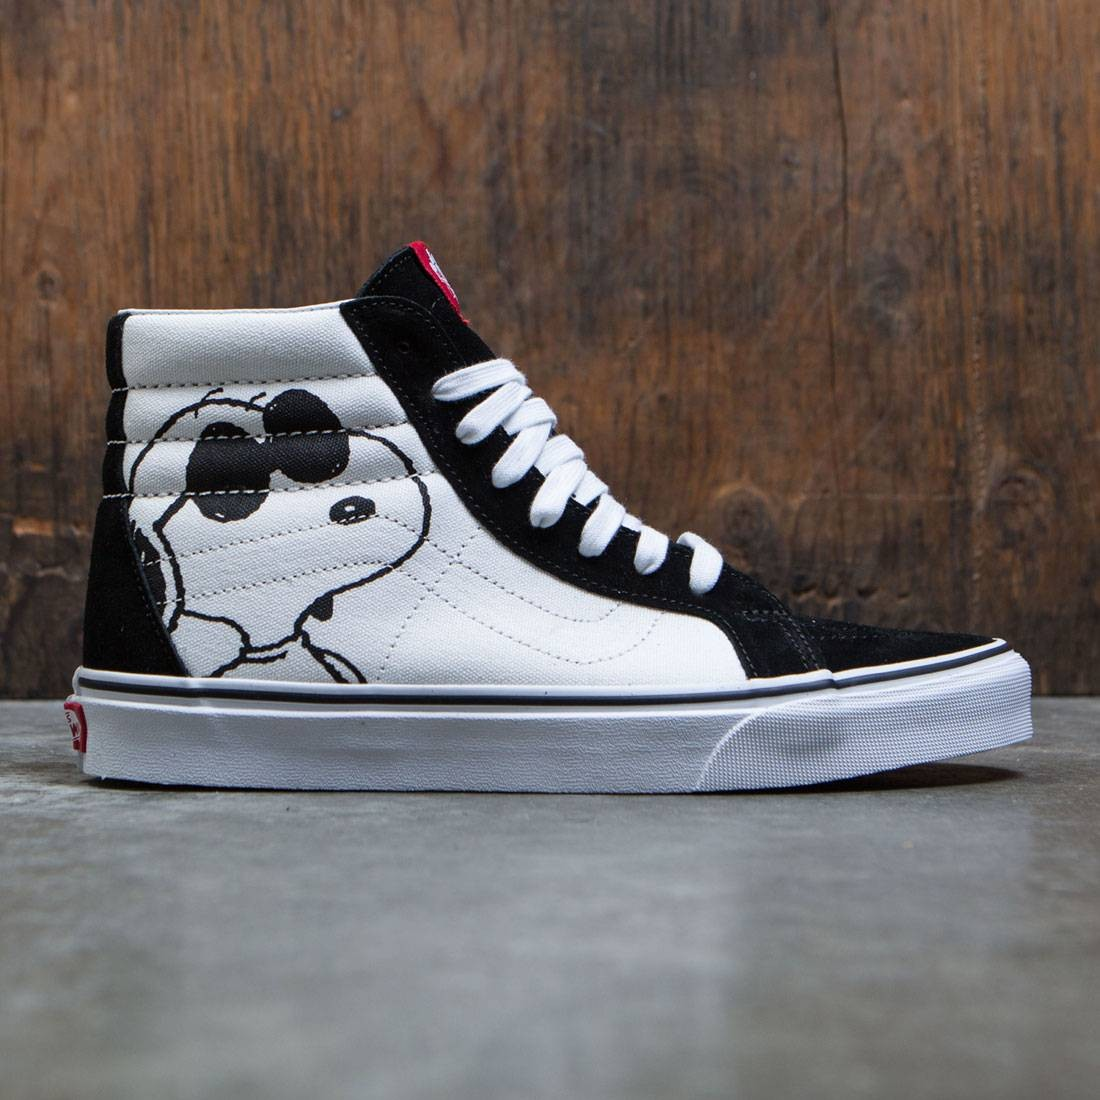 d1522393930a88 Vans x Peanuts Men Sk8-Hi Reissue - Joe Cool black